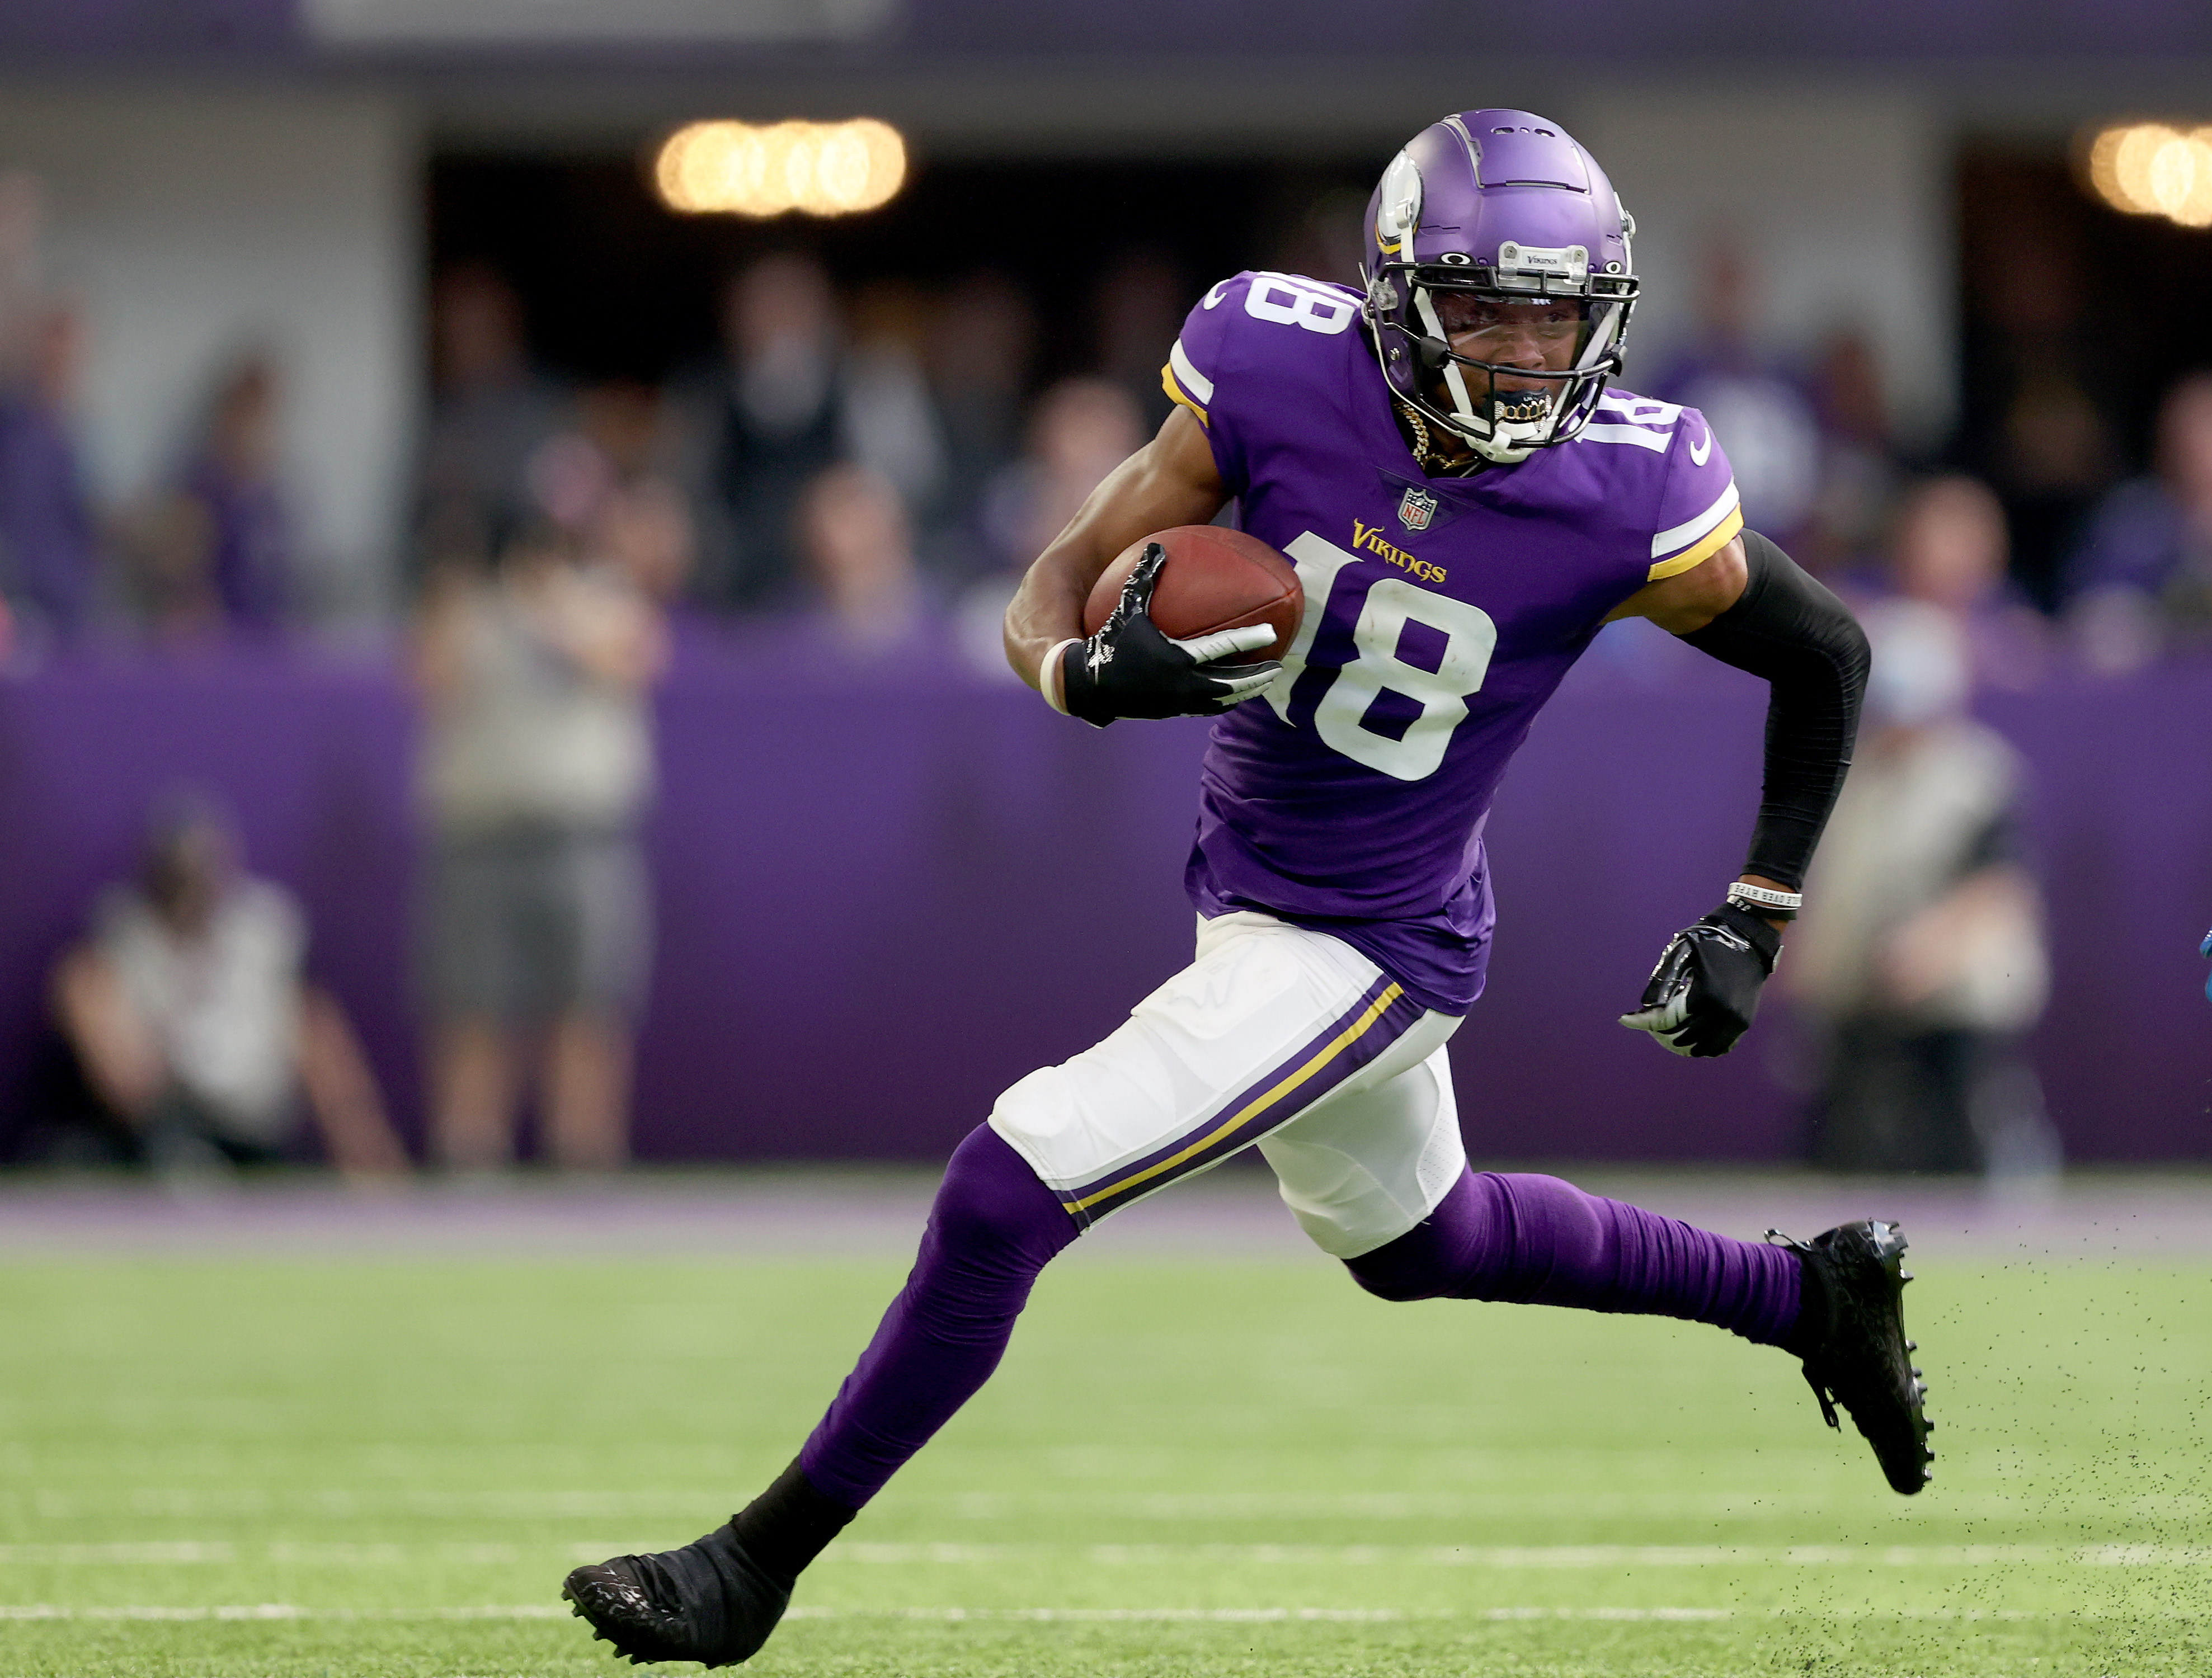 Justin Jefferson #18 of the Minnesota Vikings carries the ball in the first half against the Detroit Lions at U.S. Bank Stadium on October 10, 2021 in Minneapolis, Minnesota. The Minnesota Vikings defeated the Detroit Lions 19-17.